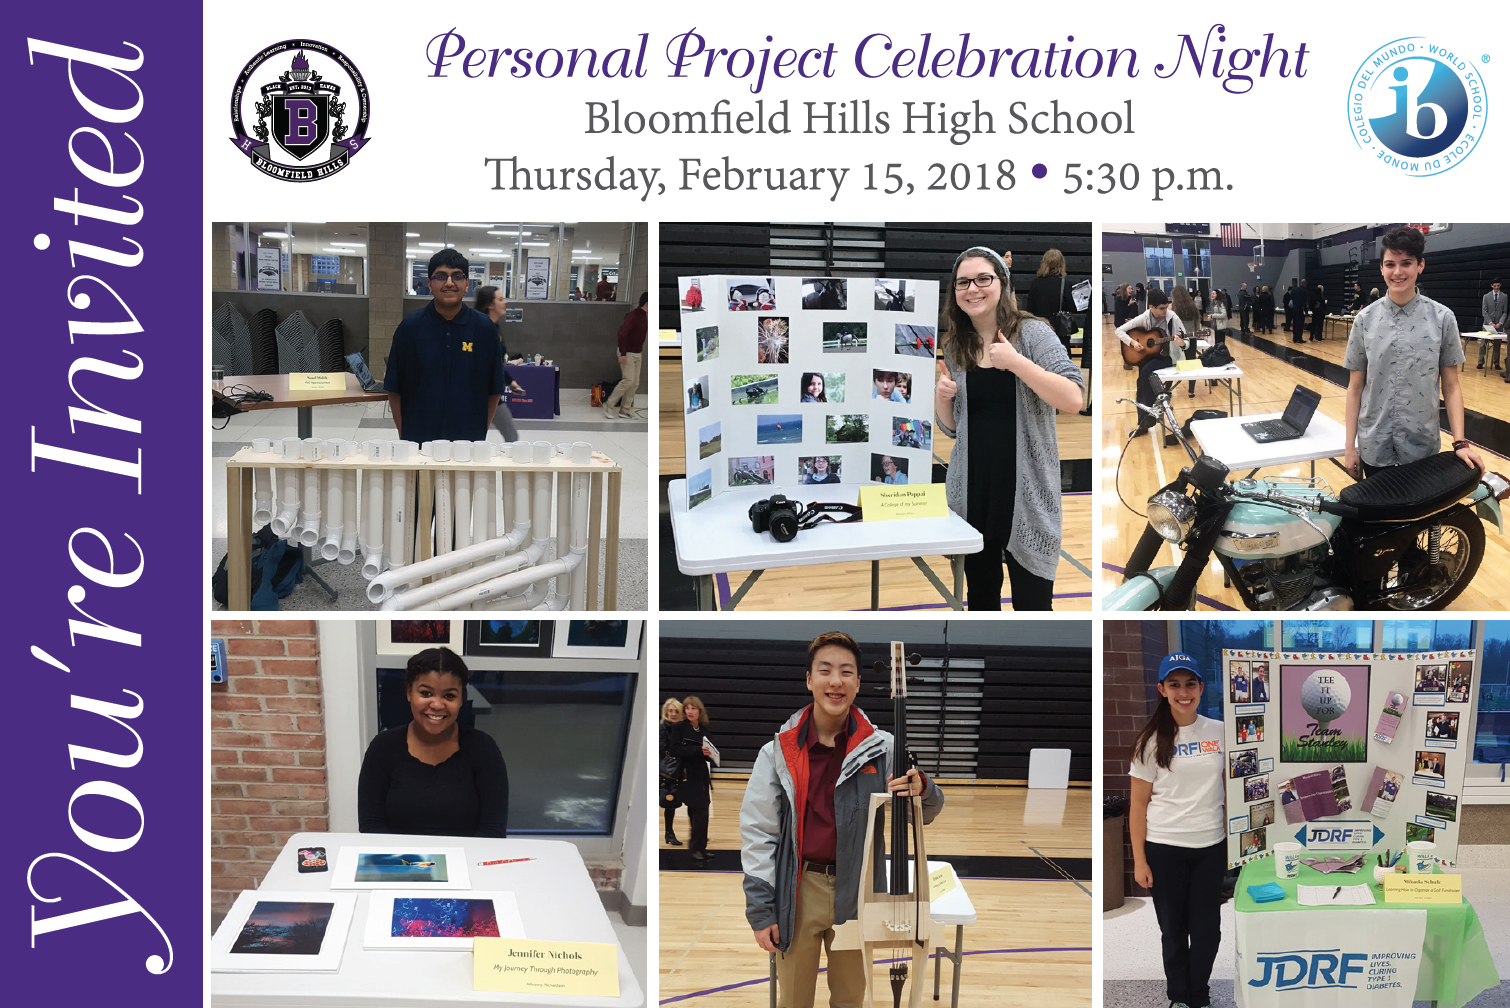 2018 MYP Personal Project Celebration Night